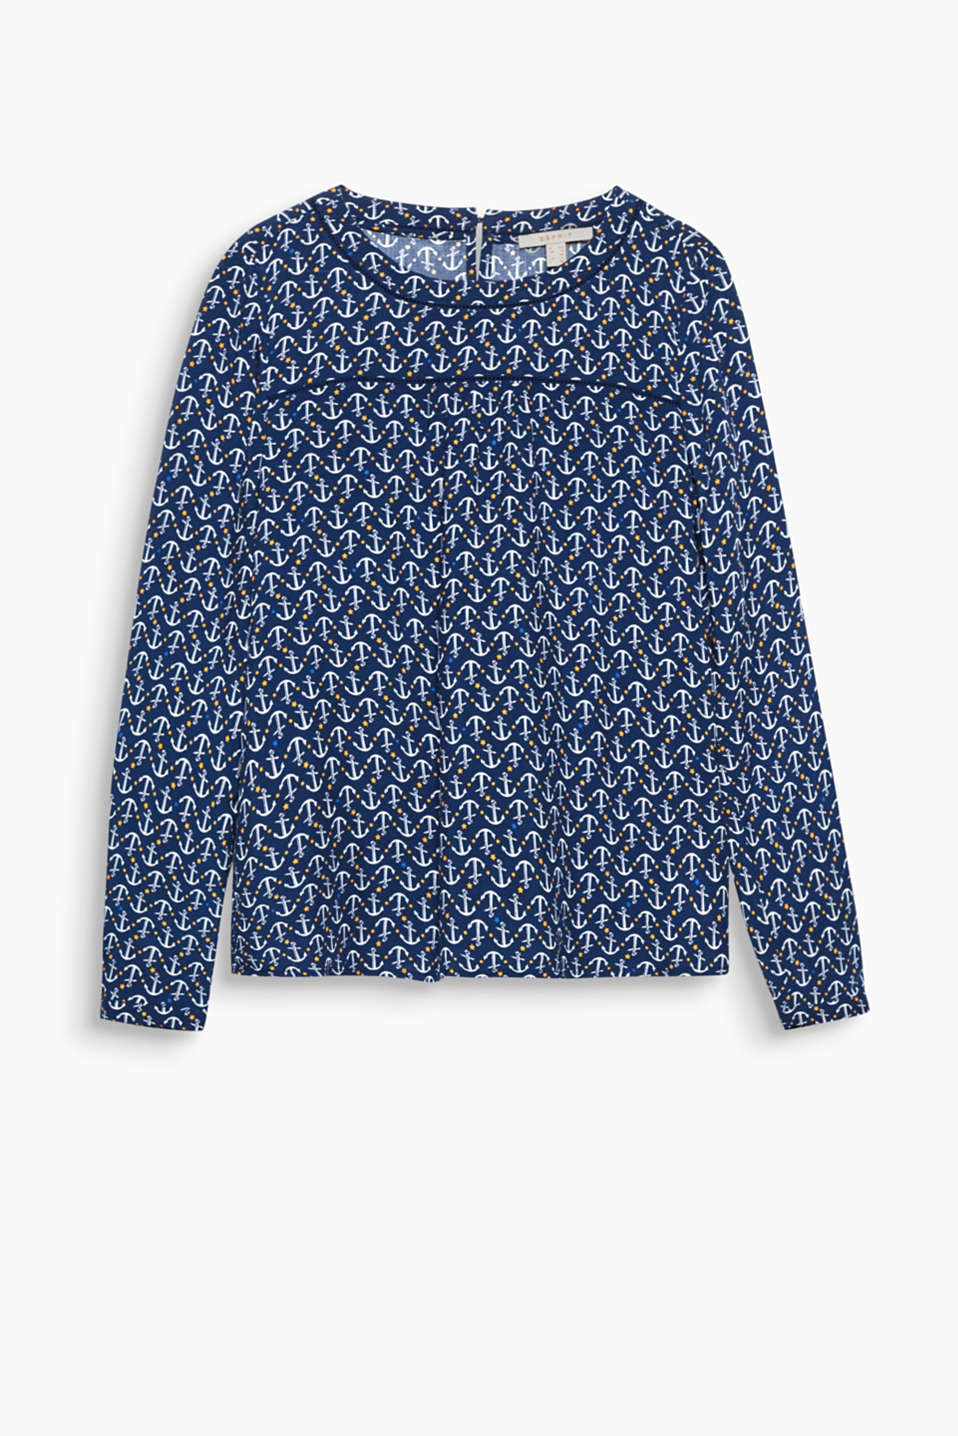 This flowing blouse with an all-over print and openwork pattern is so easy and versatile to wear!